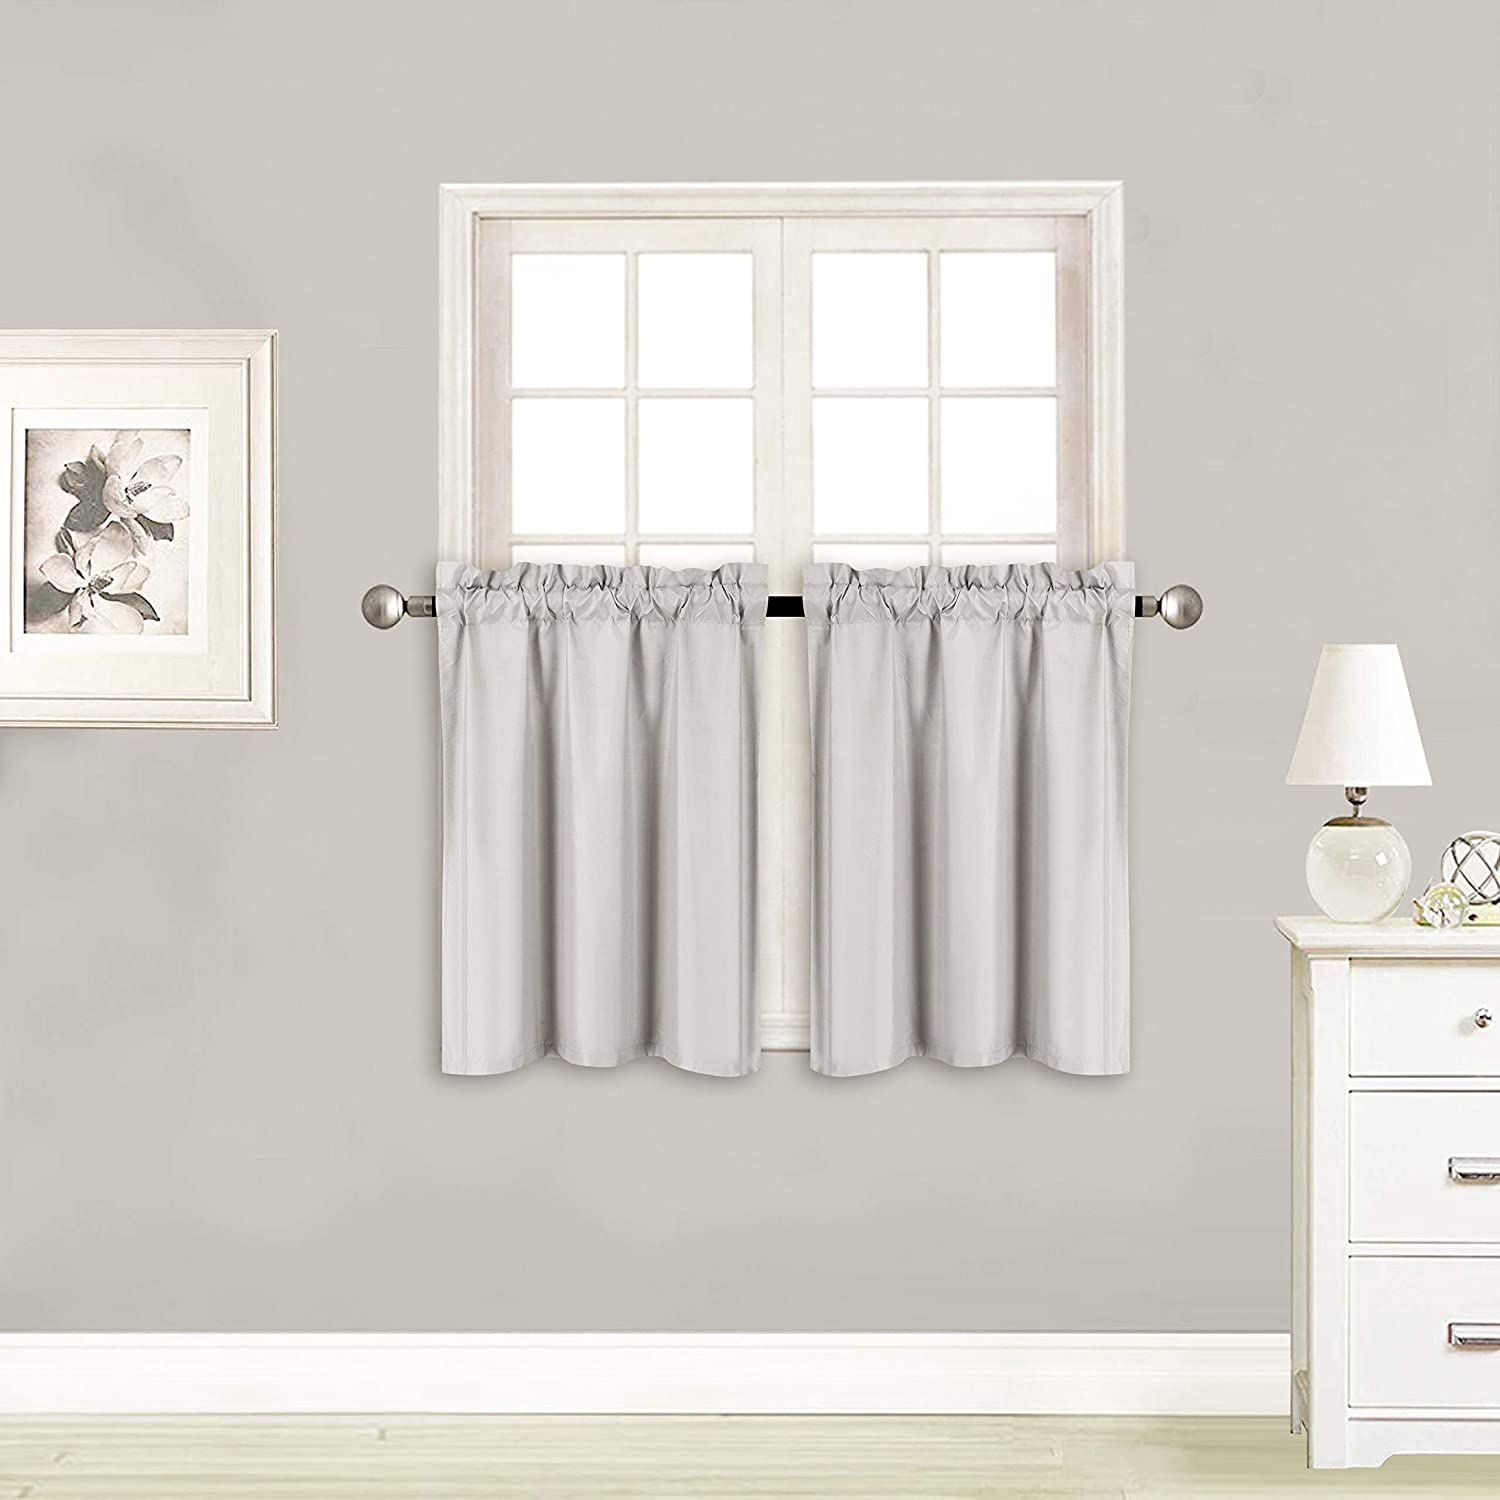 Elegant Home 2 Panels Tiers Small Window Treatment Curtain Insulated Blackout Drape Short Panel 28 W X 24 L Each for Kitchen Bathroom or Any Small Window # R16 Silver//Grey